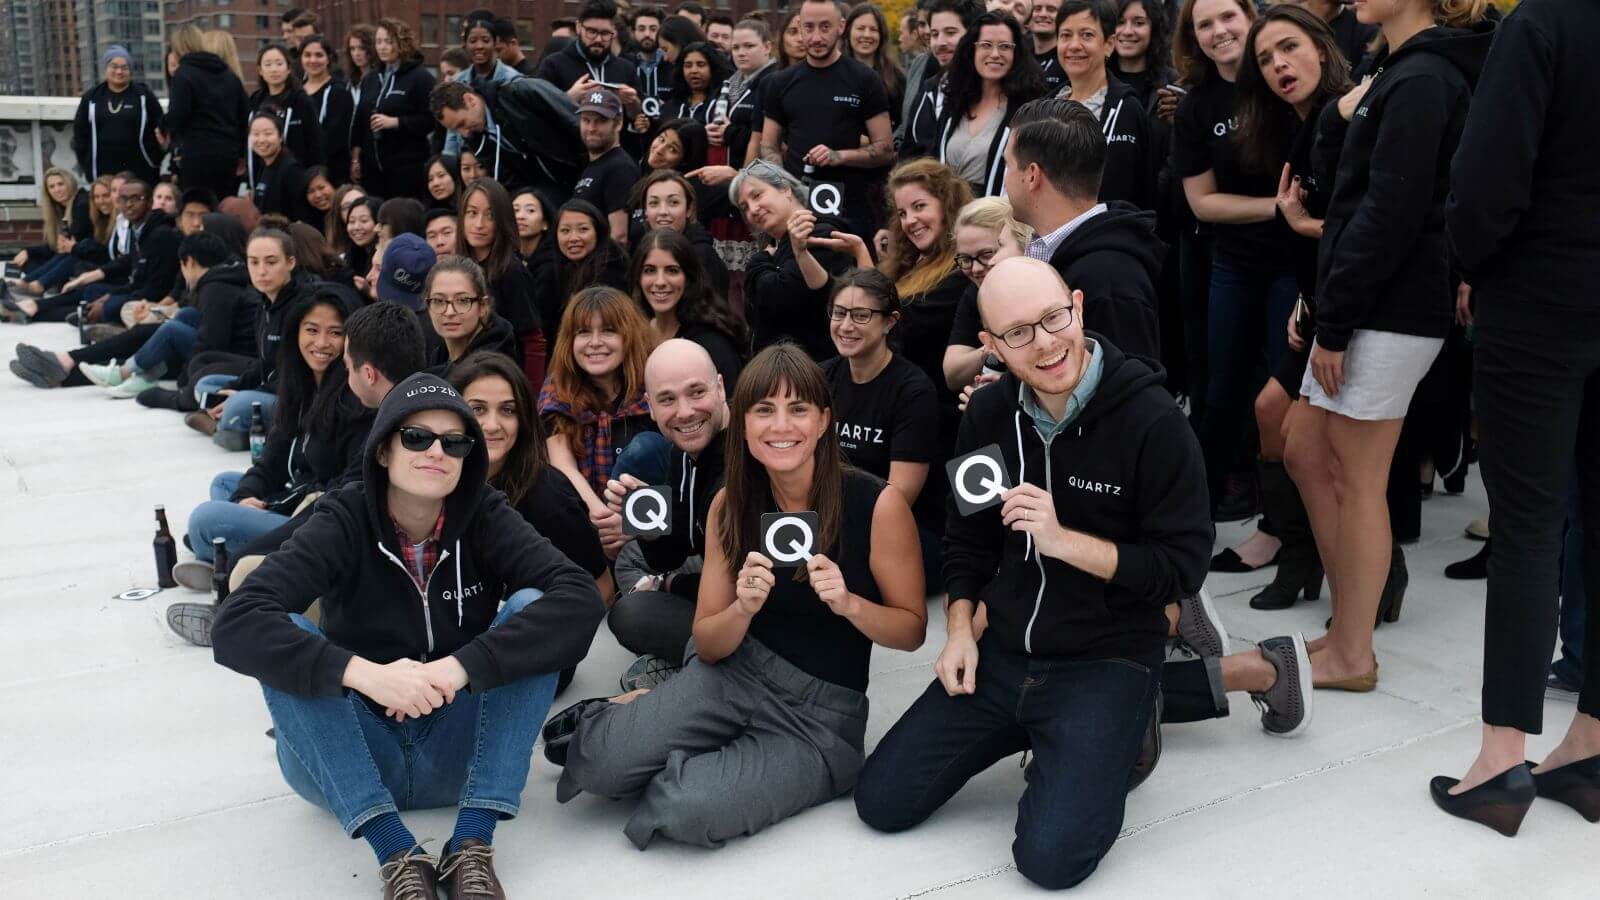 The Quartz Team (Photo by Quartz/Mia Mabanta)